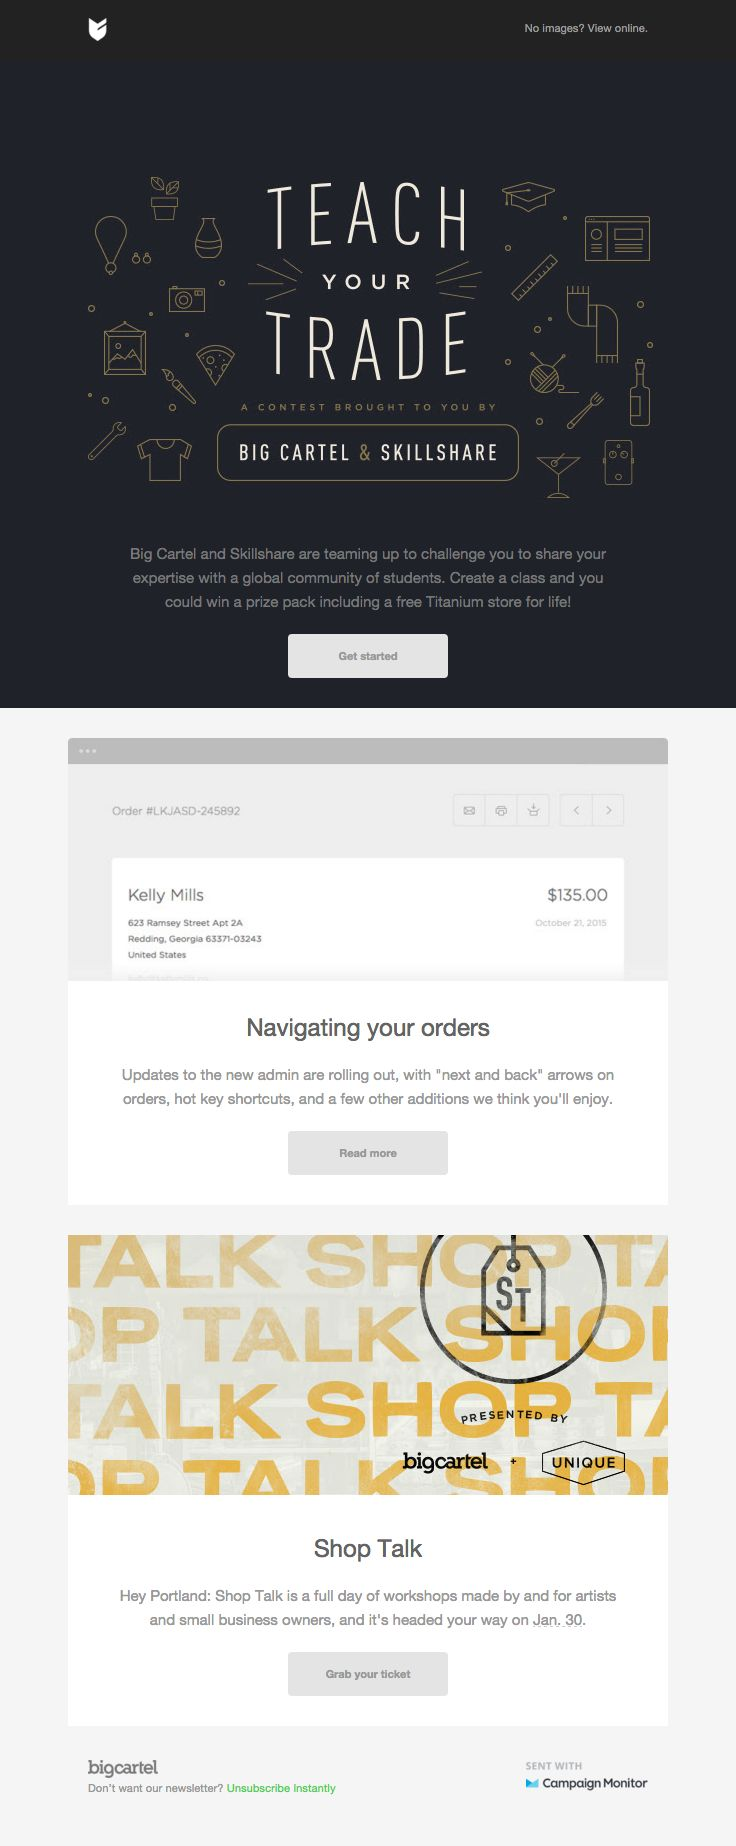 209 best cool email template designs images on pinterest email big cartel sent this email with the subject line teach your trade contest new email designemail template pronofoot35fo Images